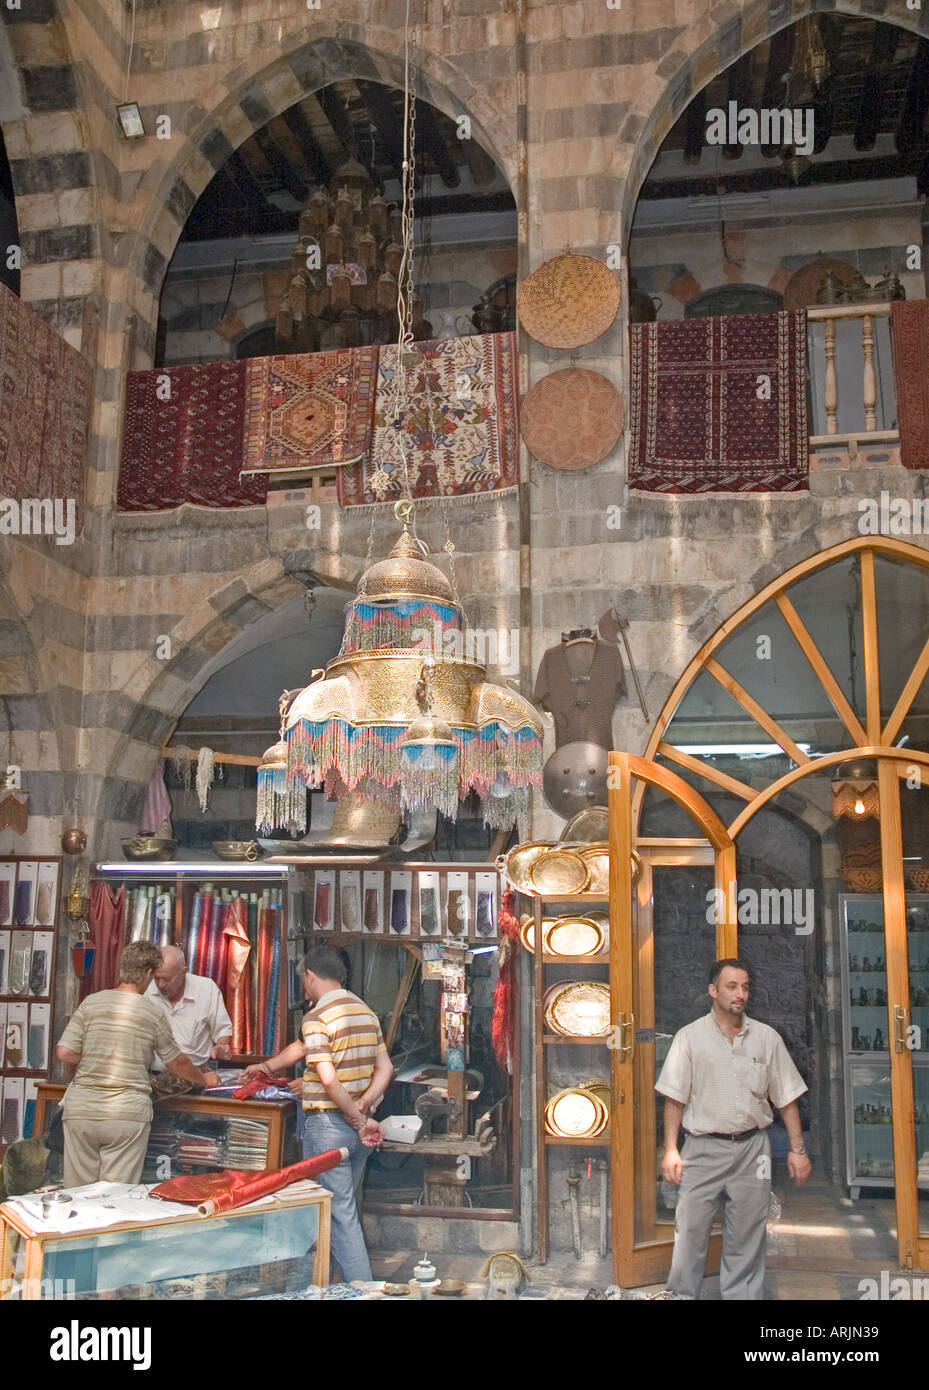 Interior of large shop, crowded market of al-Hamidiyya souk, souq, district of Damascus, Syria, Middle East. DSC Stock Photo